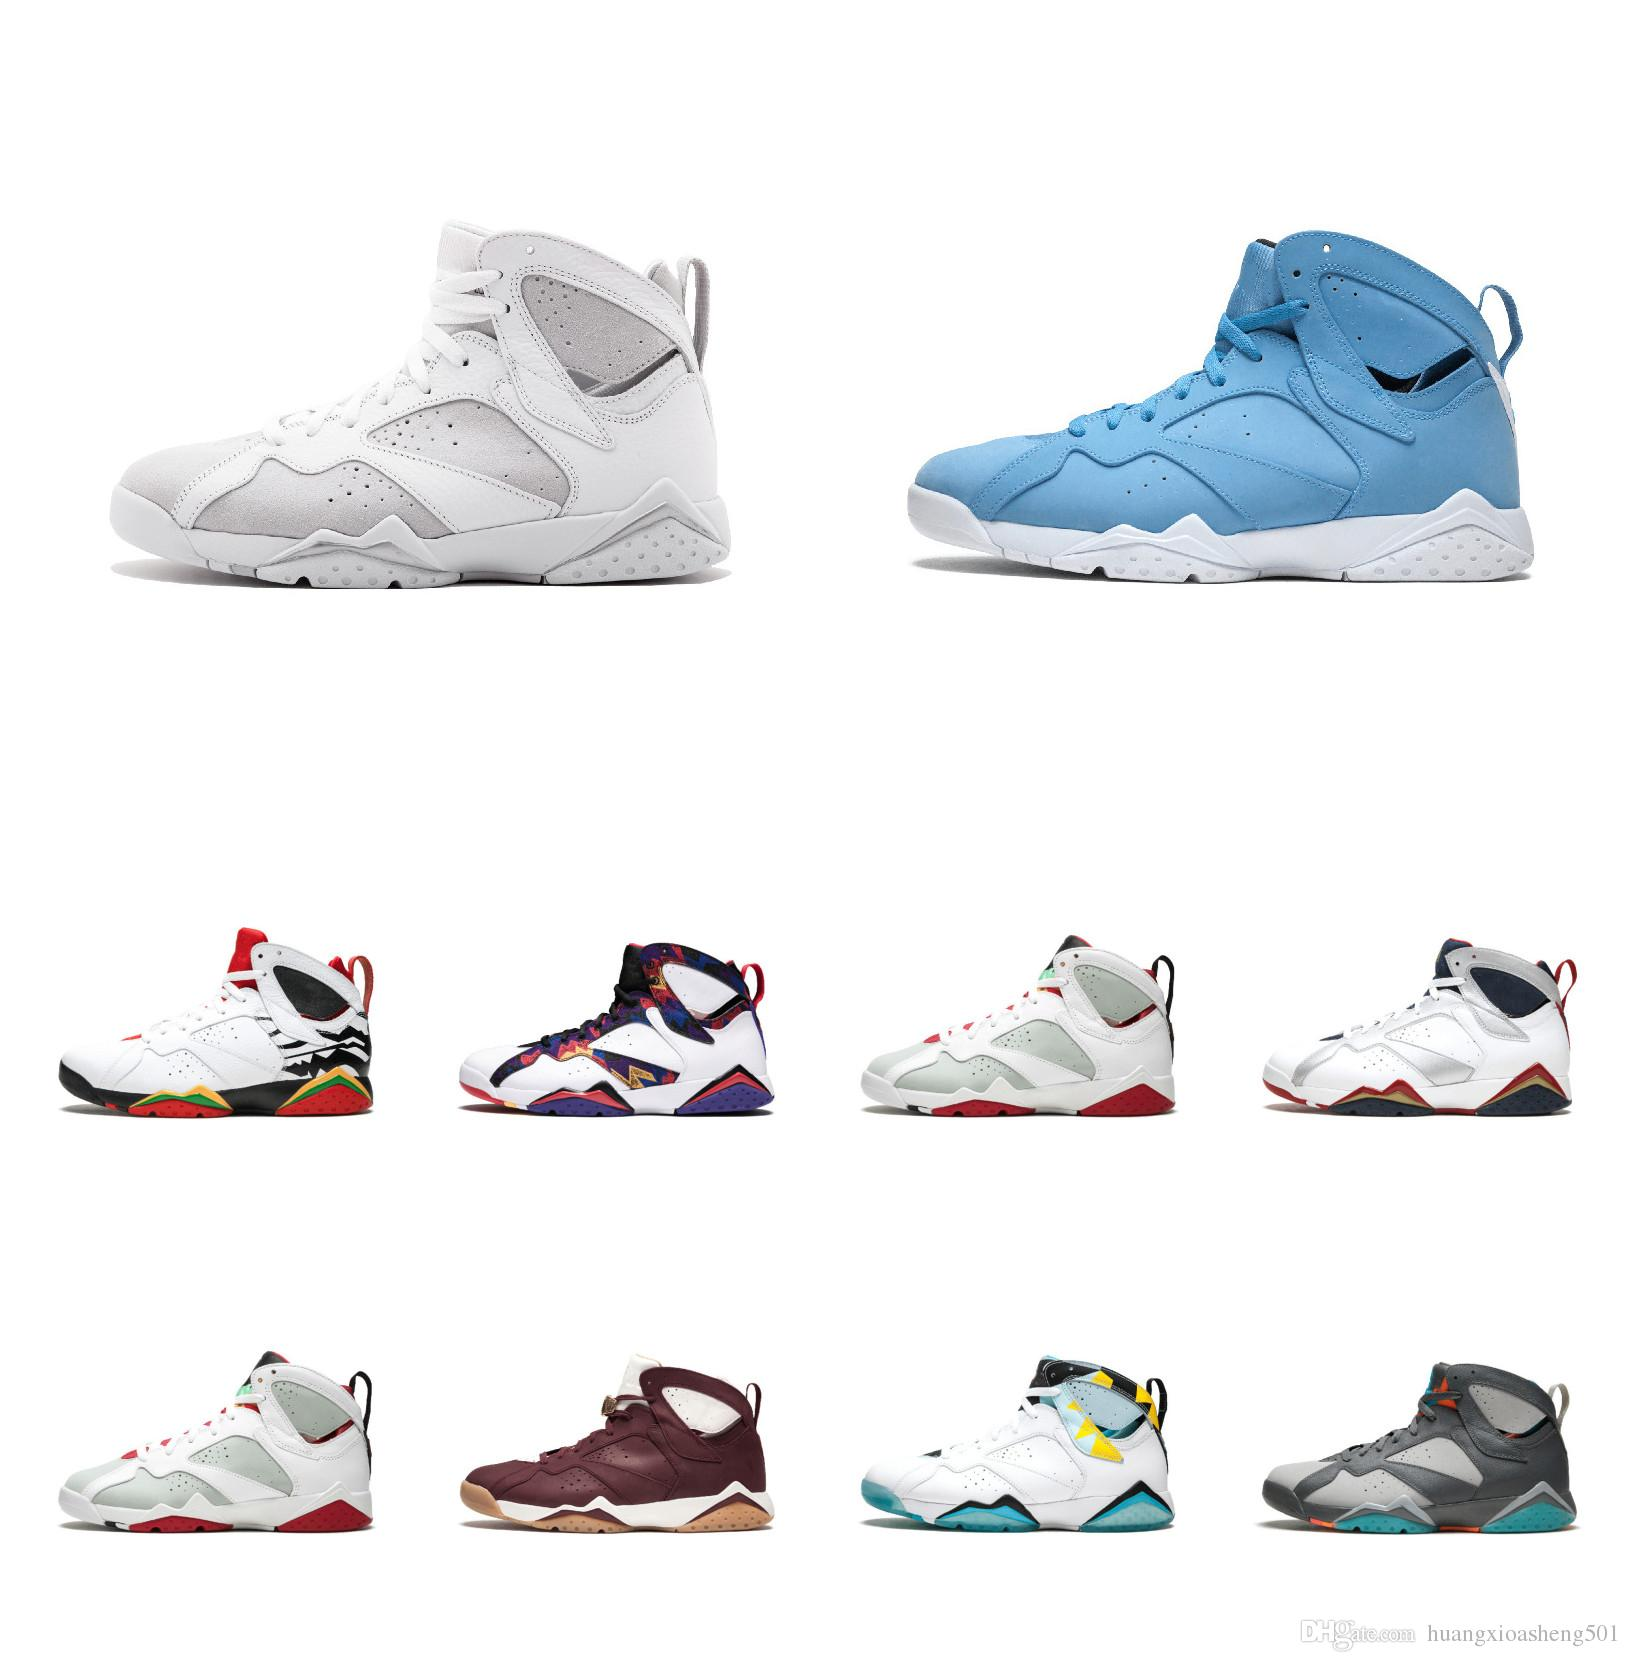 b71fd256e85492 2019 Cheap 7 Basketball Shoes Men Women 7s VII Purple UNC Bordeaux Olympic  Panton Pure Money Nothing Raptor N7 Zapatos Trainer Retro Shoe Sneaker From  ...